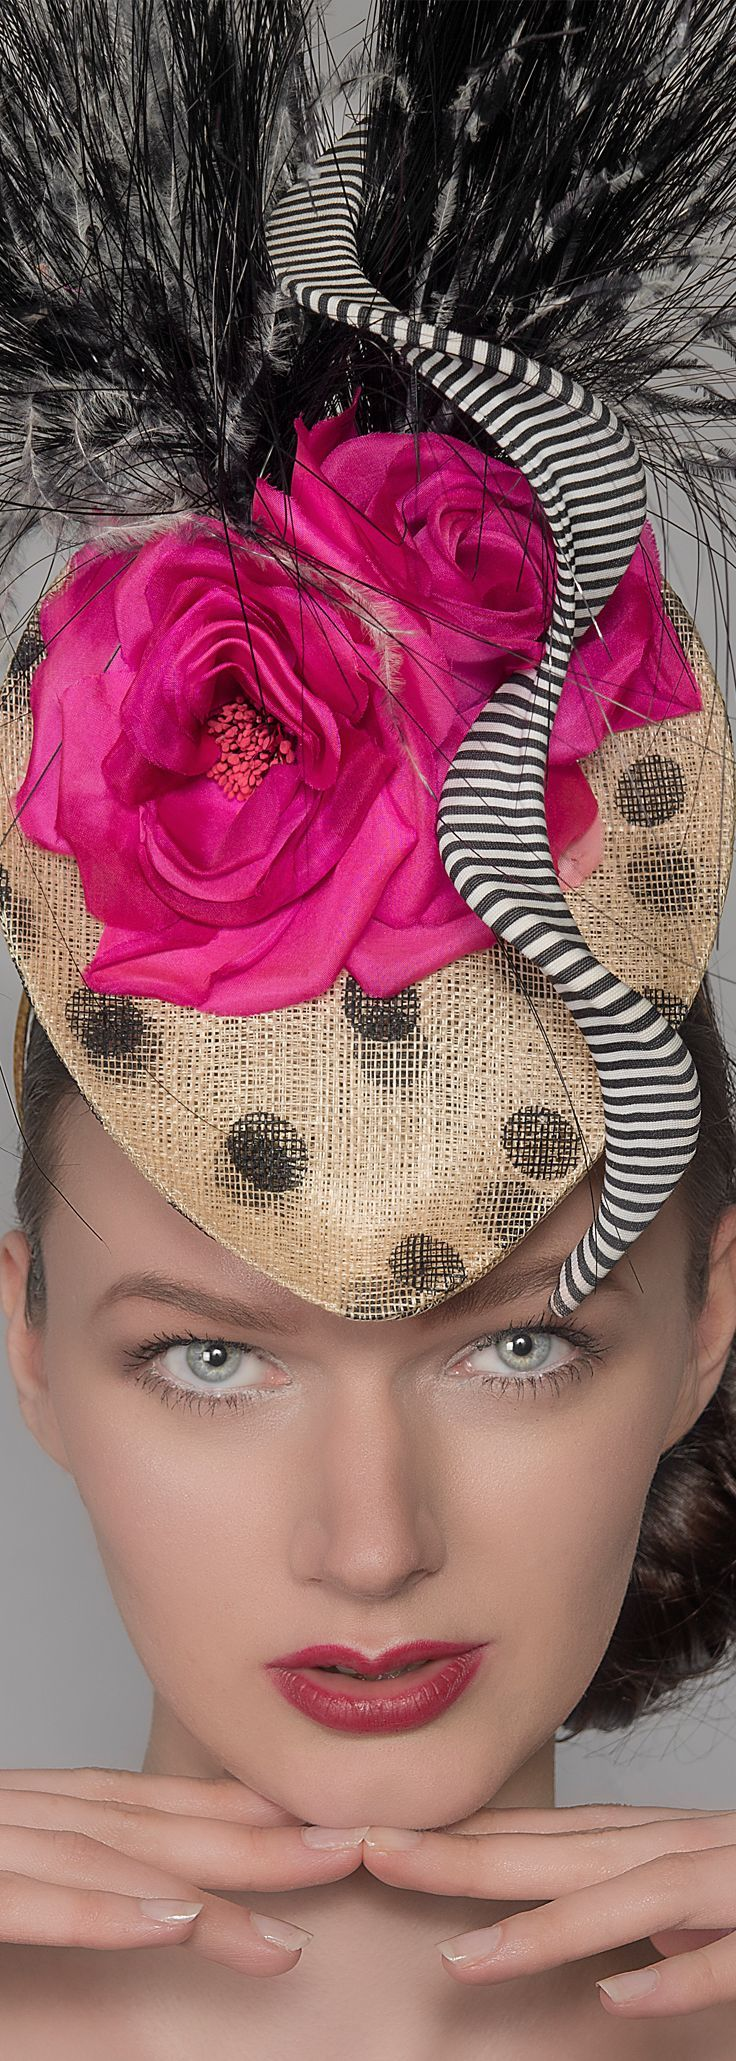 Ladies Designer Hat Hire or Bespoke Hats made to order available in our online shop. For custom made just drop us and email with your requirements and brief. Book online for Hat Hire at Royal Ascot Races. The only Hat Hire at Royal Ascot Races. Hats for other events, mother of the bride, available on Mail Order. Ascot Hats from Philip Treacy, Jane Taylor, Bundle Maclaren, Rosie Olivia, Nigel Rayment and other leading Milliners. #millinery #couture #fashionista #hats